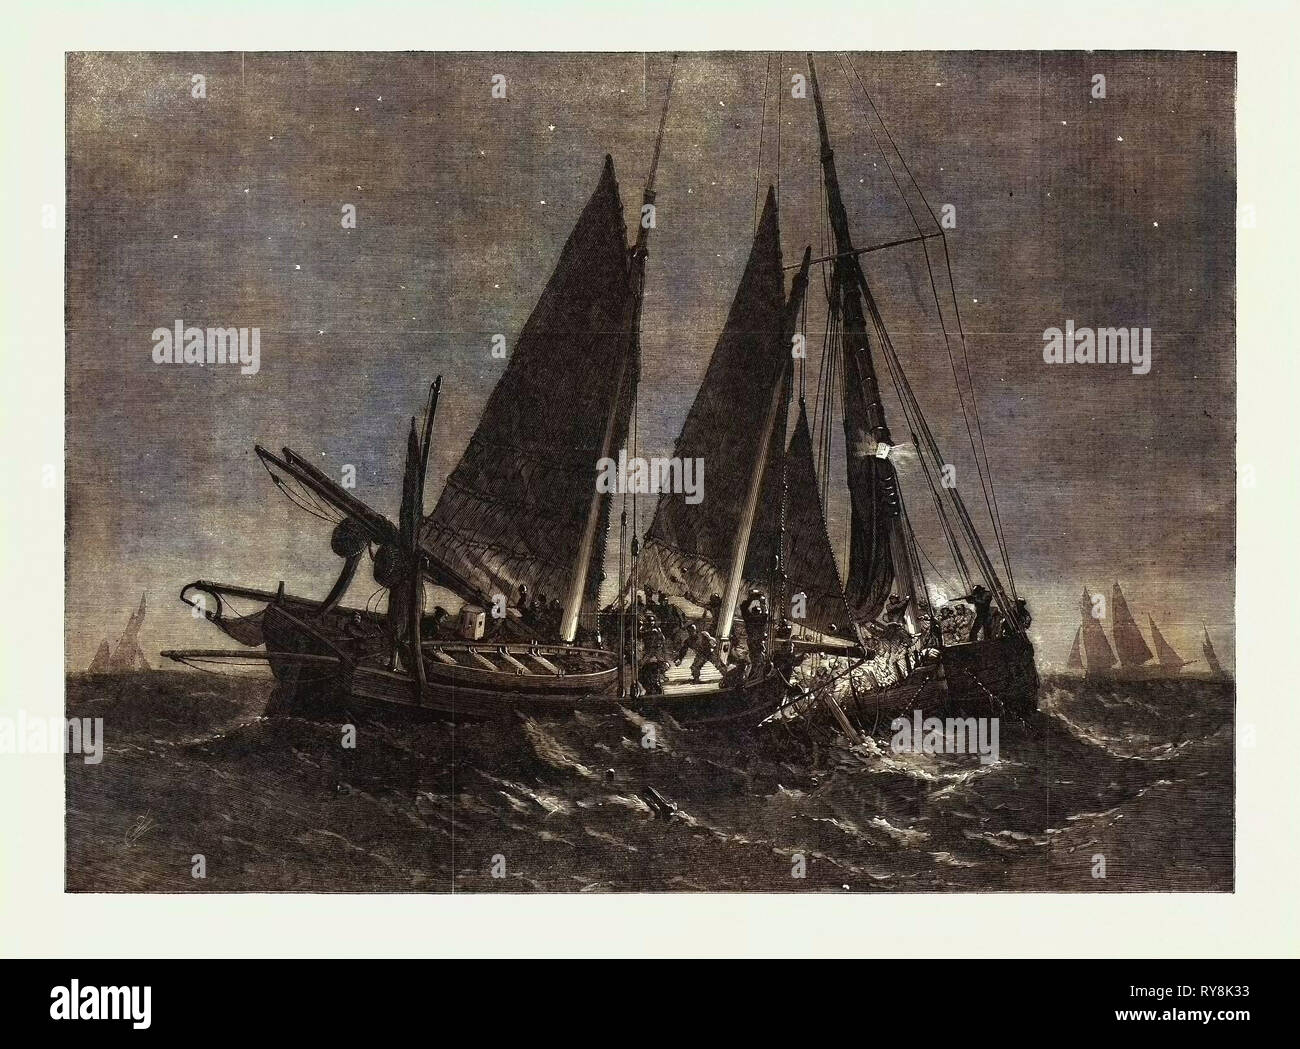 Fight Off the North Foreland Between the Crew of the Prince Arthur Fishing-Smack of Ramsgate and of the Boulogne Fishing Boat - Stock Image